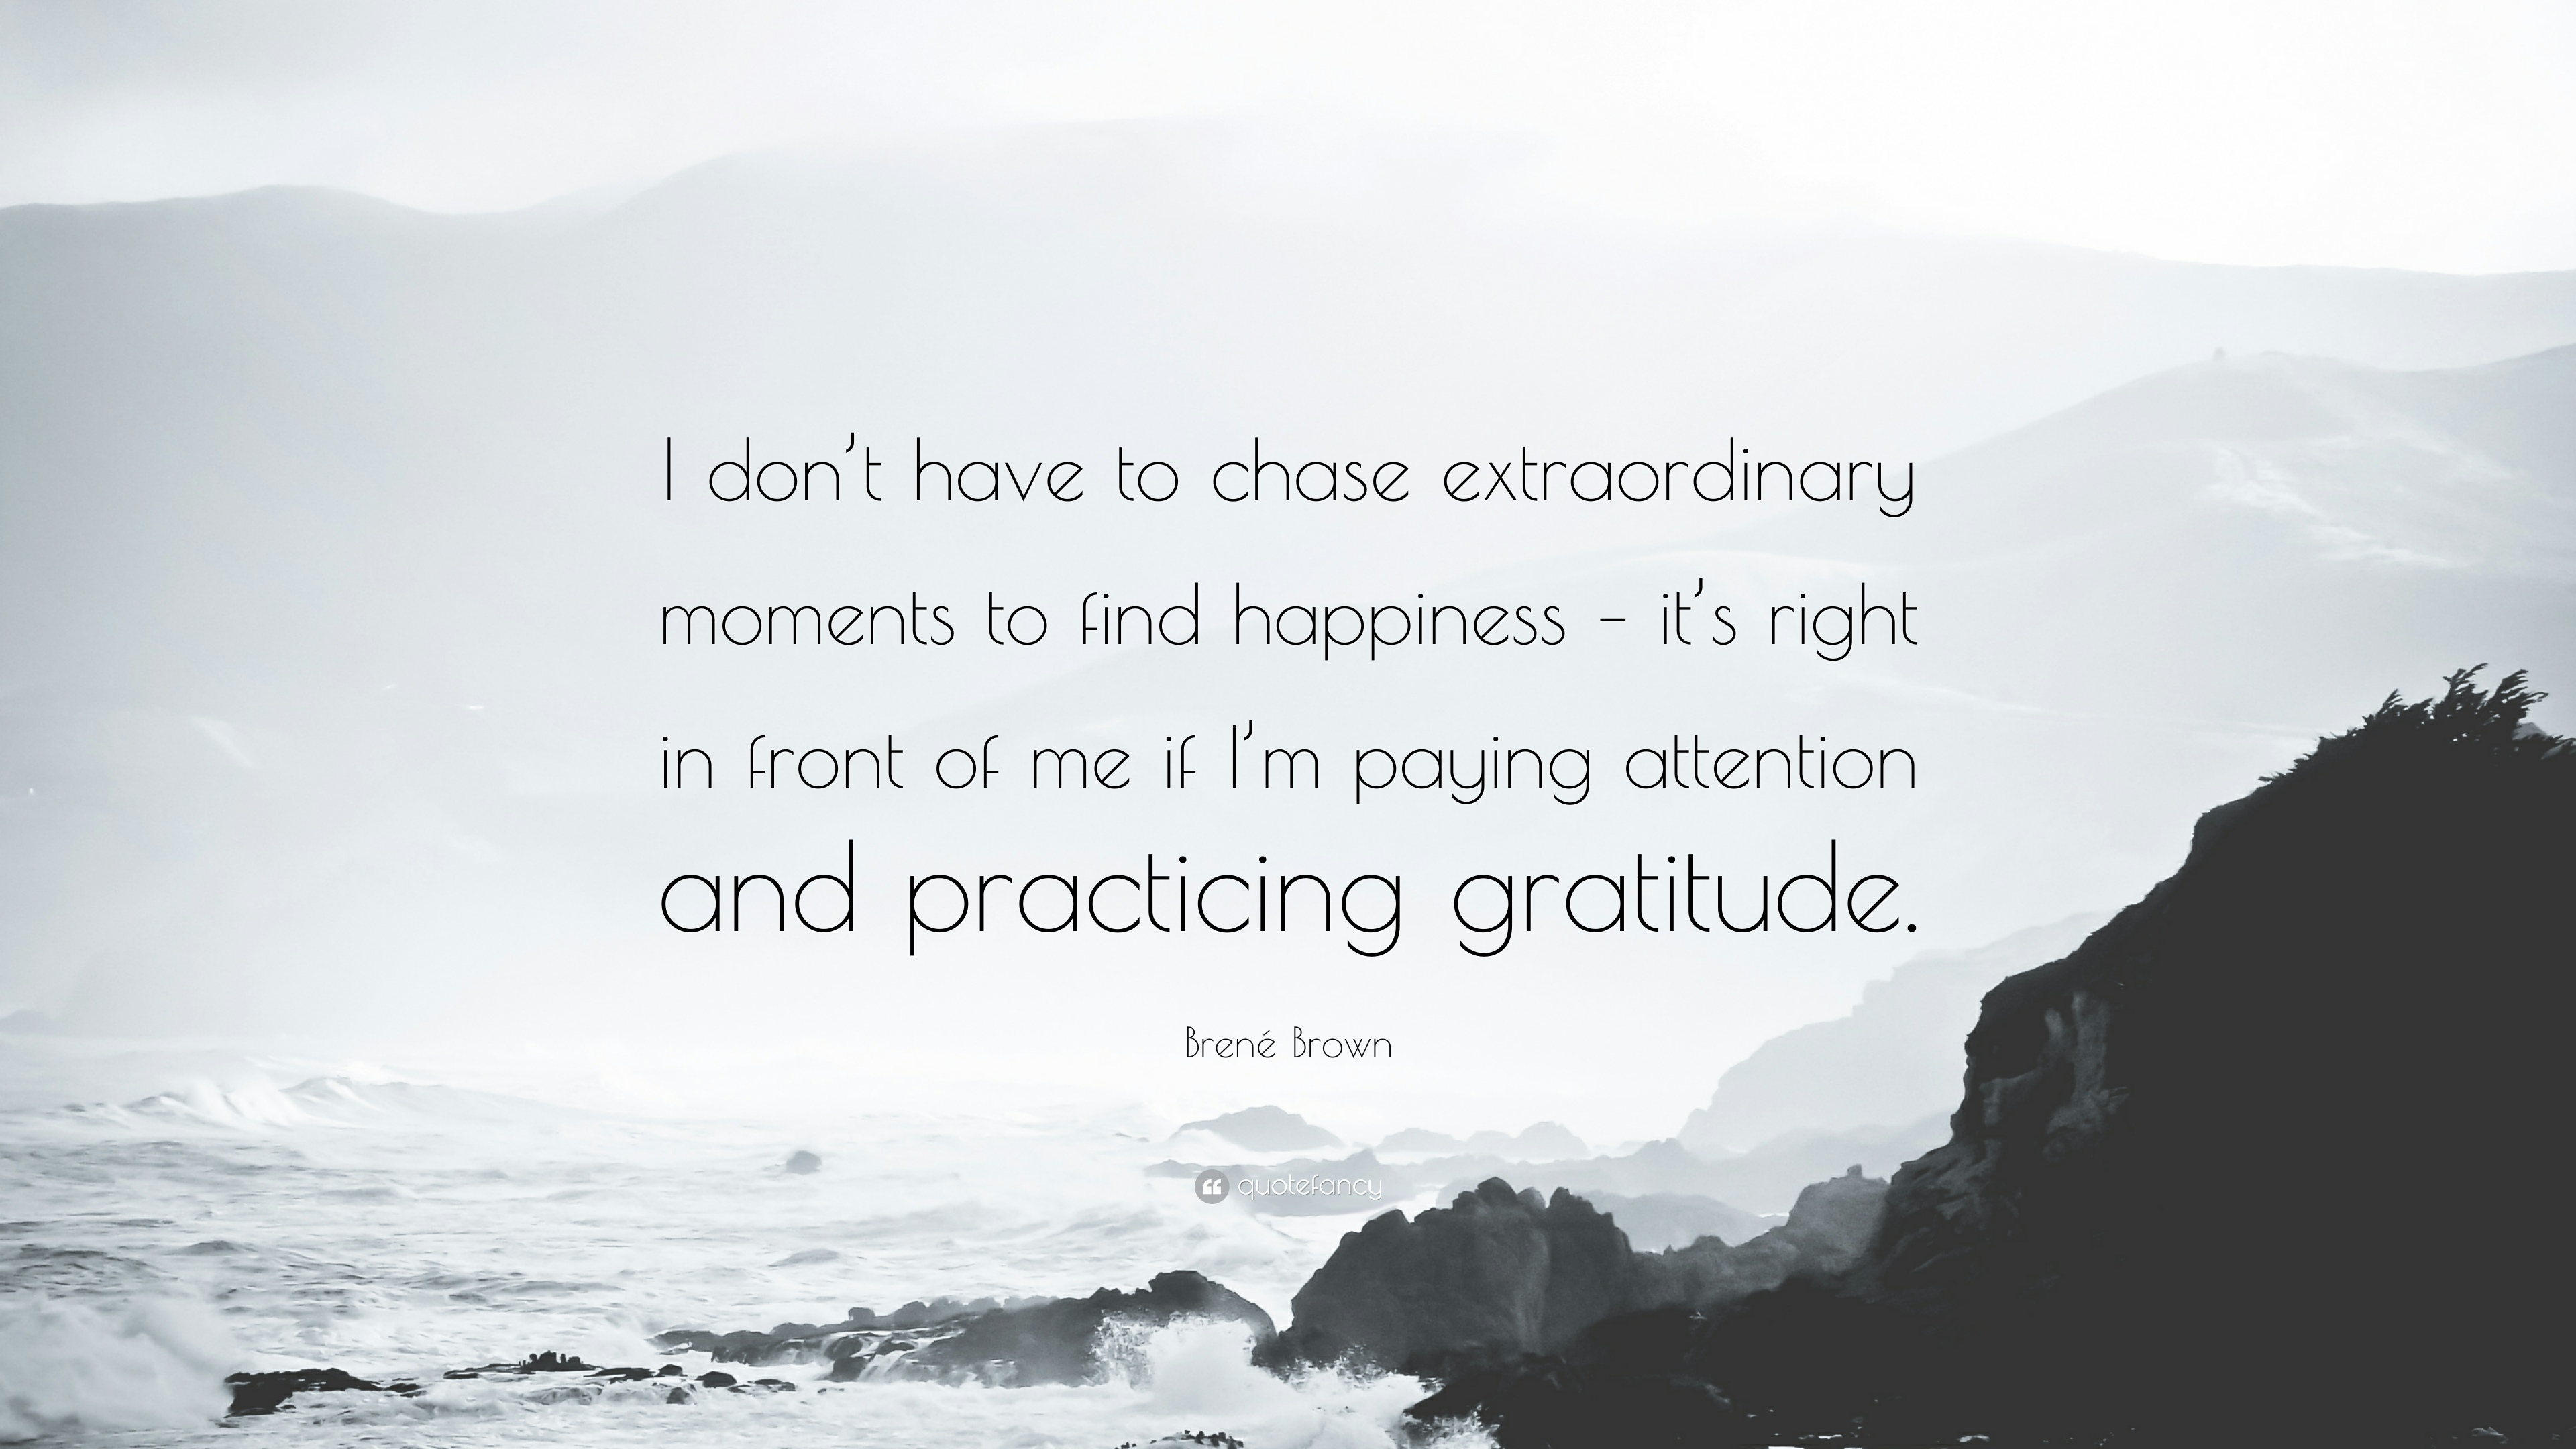 High Quality Gratitude Quotes: U201cI Donu0027t Have To Chase Extraordinary Moments To Find  Happiness